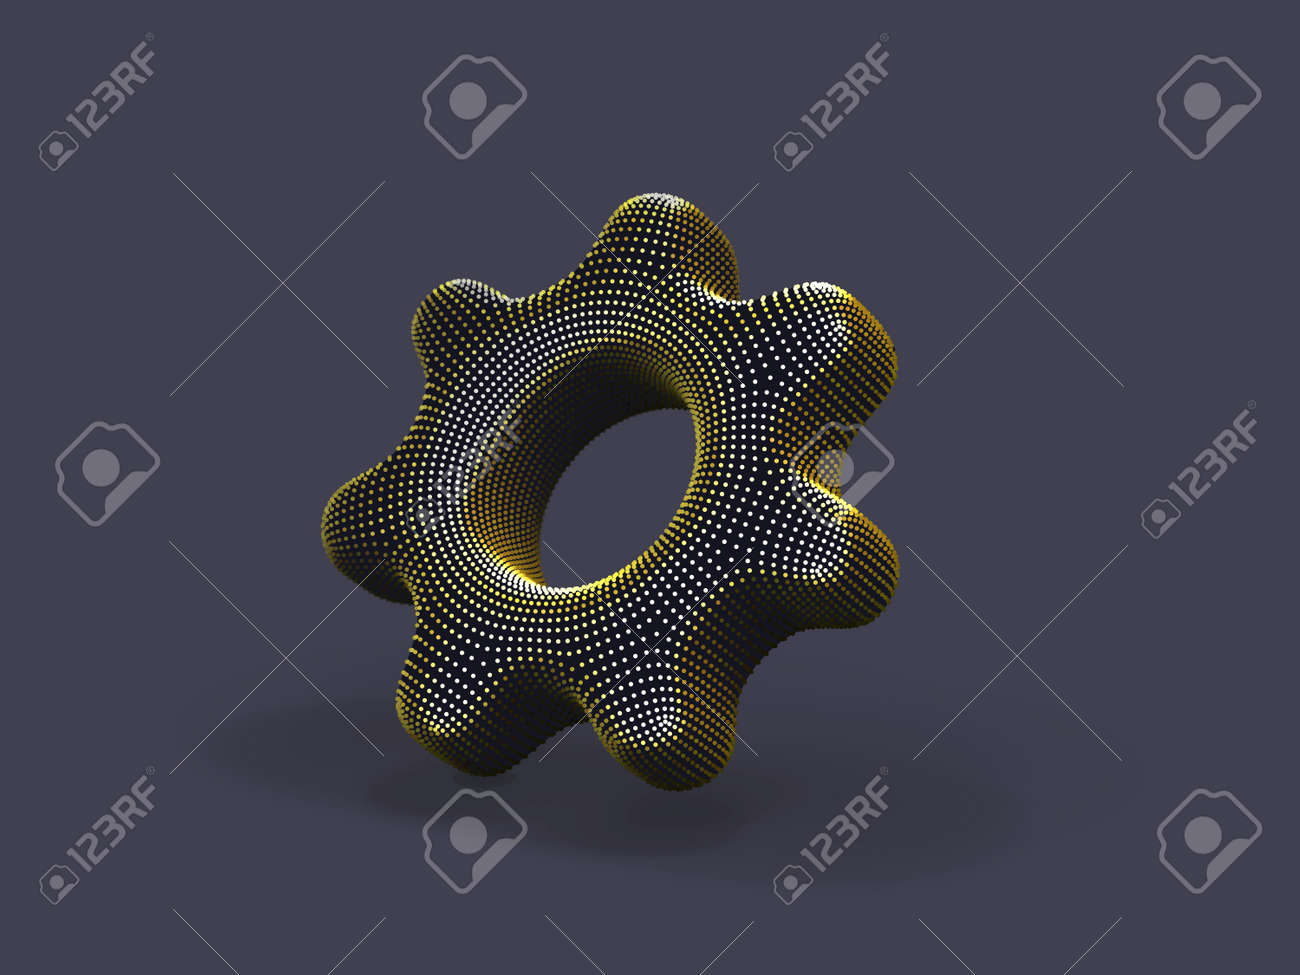 3D gear made of yellow dots on gray background. Abstract vector illustration of digital golden cogwheel. Concept of software setup, program settings and online support. - 161316684